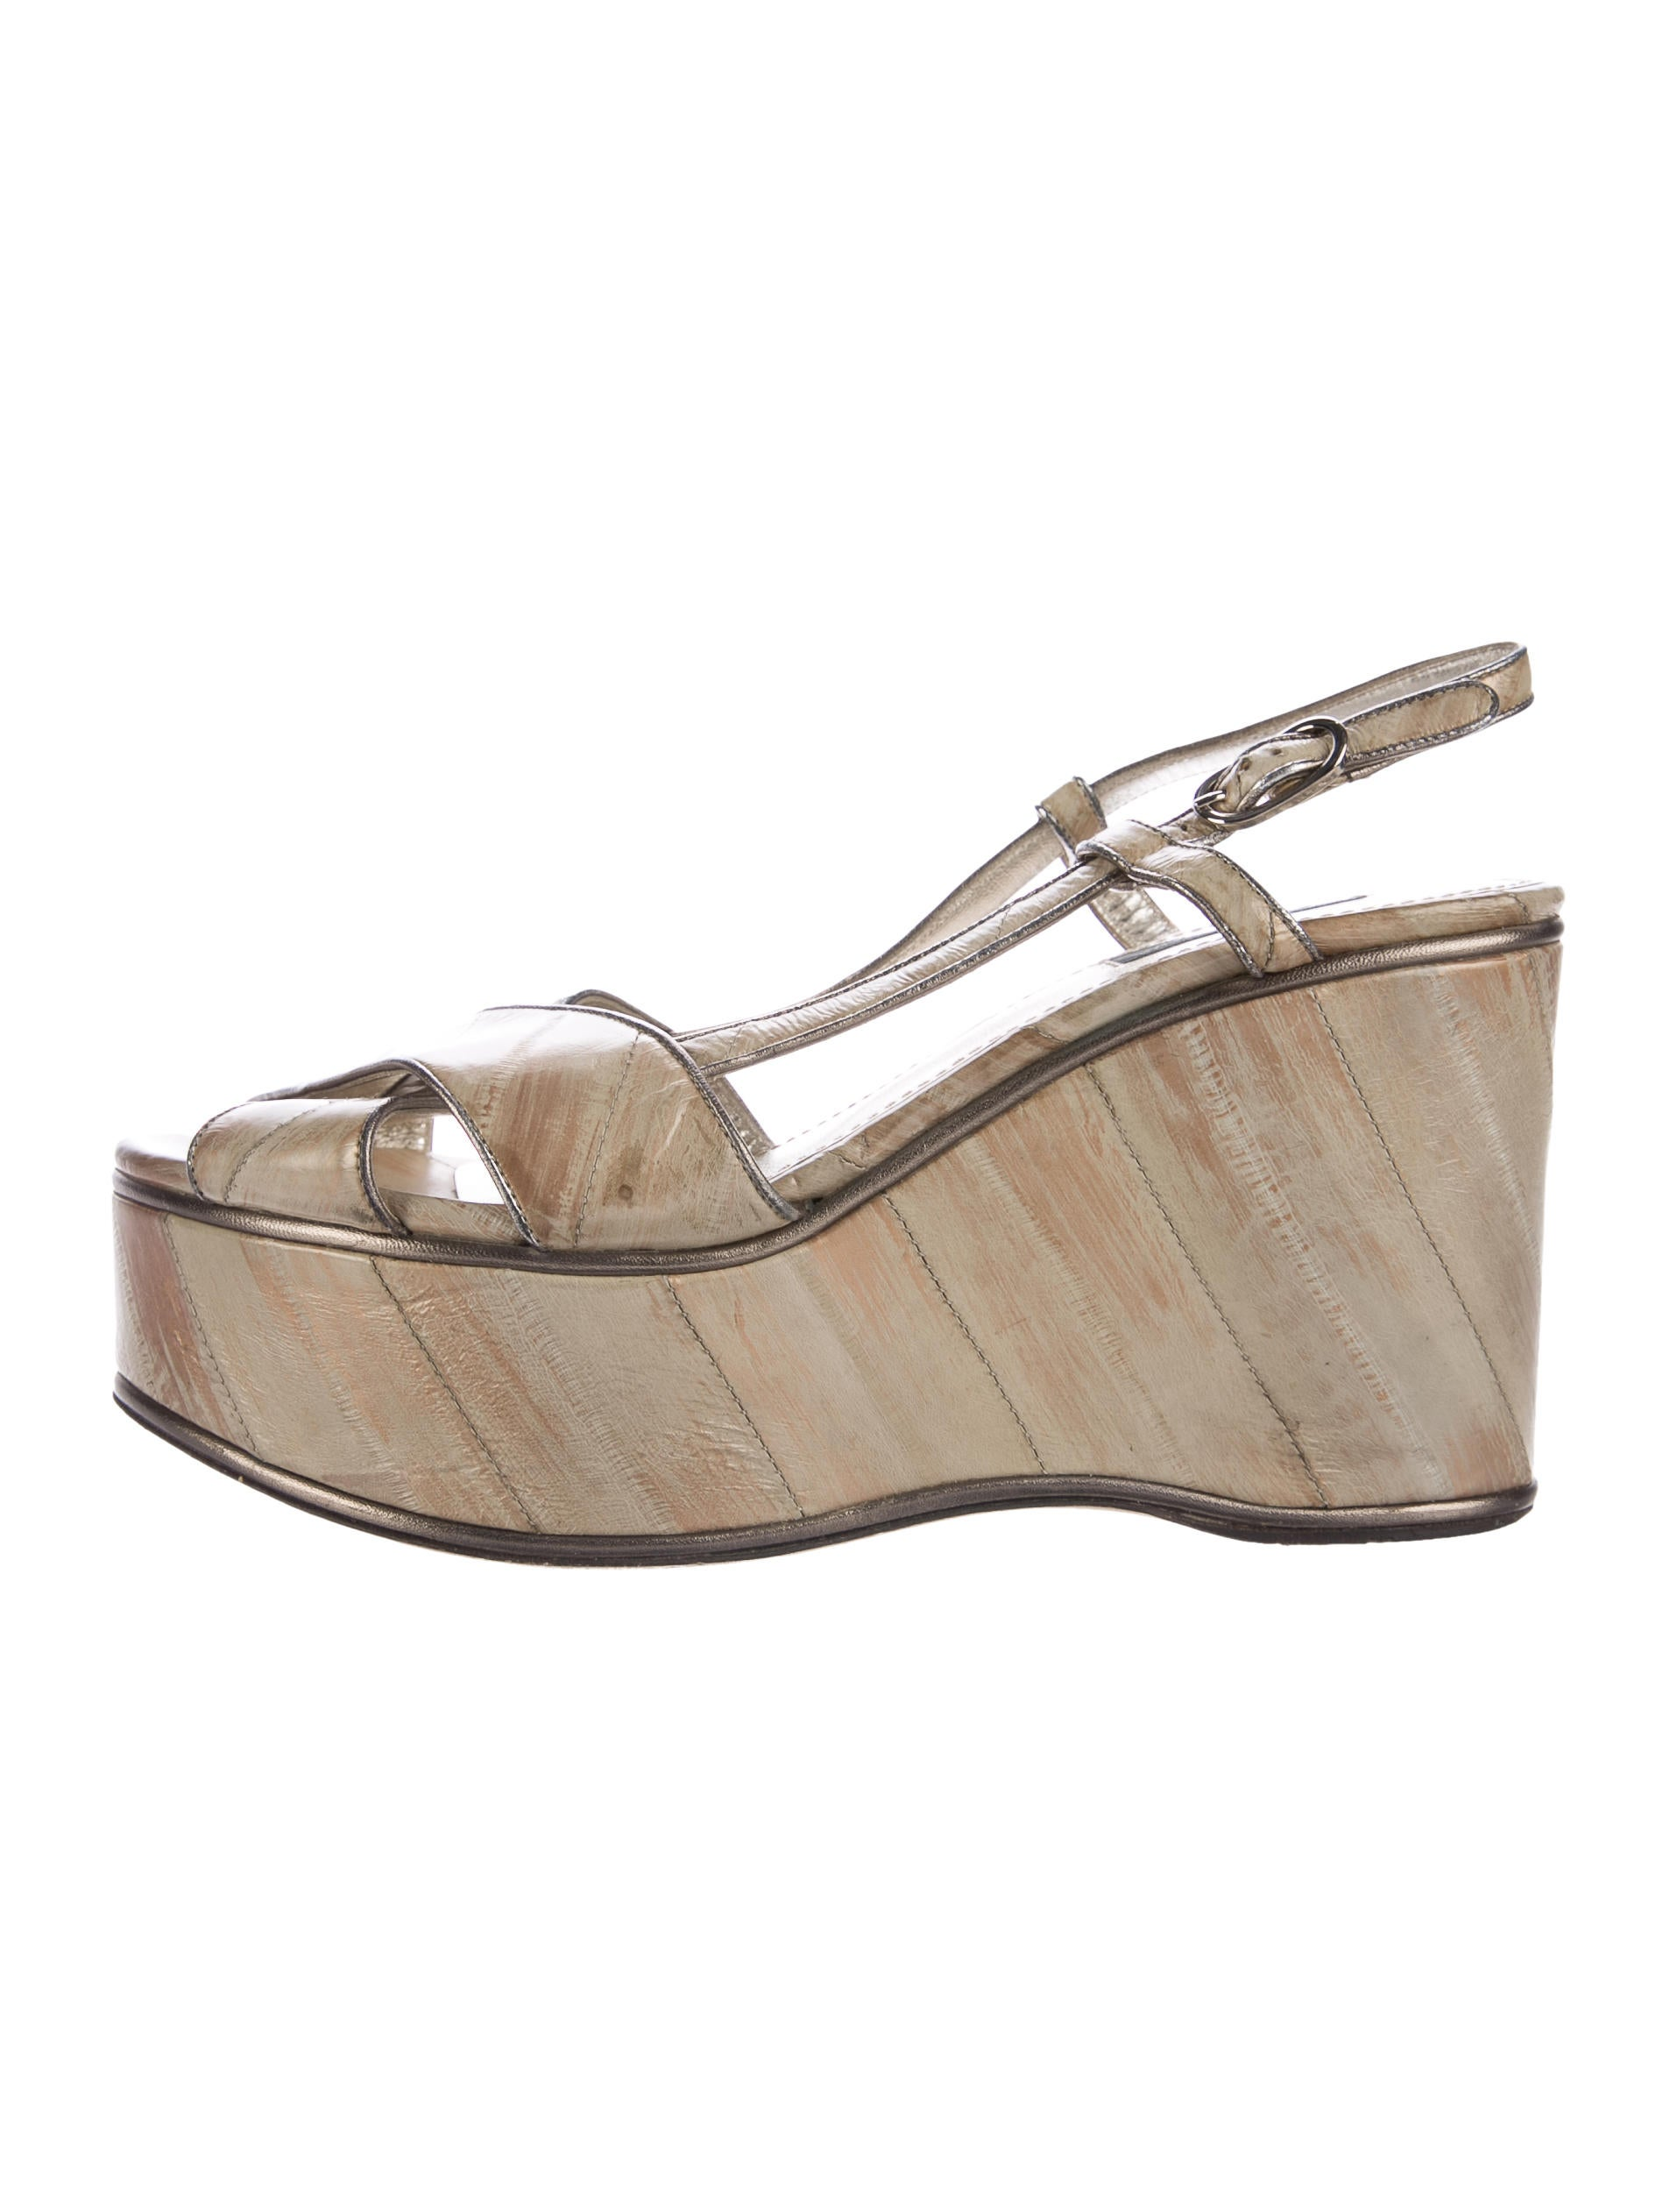 Dolce & Gabbana Eel Wedge Sandals cheap for sale cheapest price for sale best prices cheap price with mastercard for sale comfortable for sale KQ7Q5